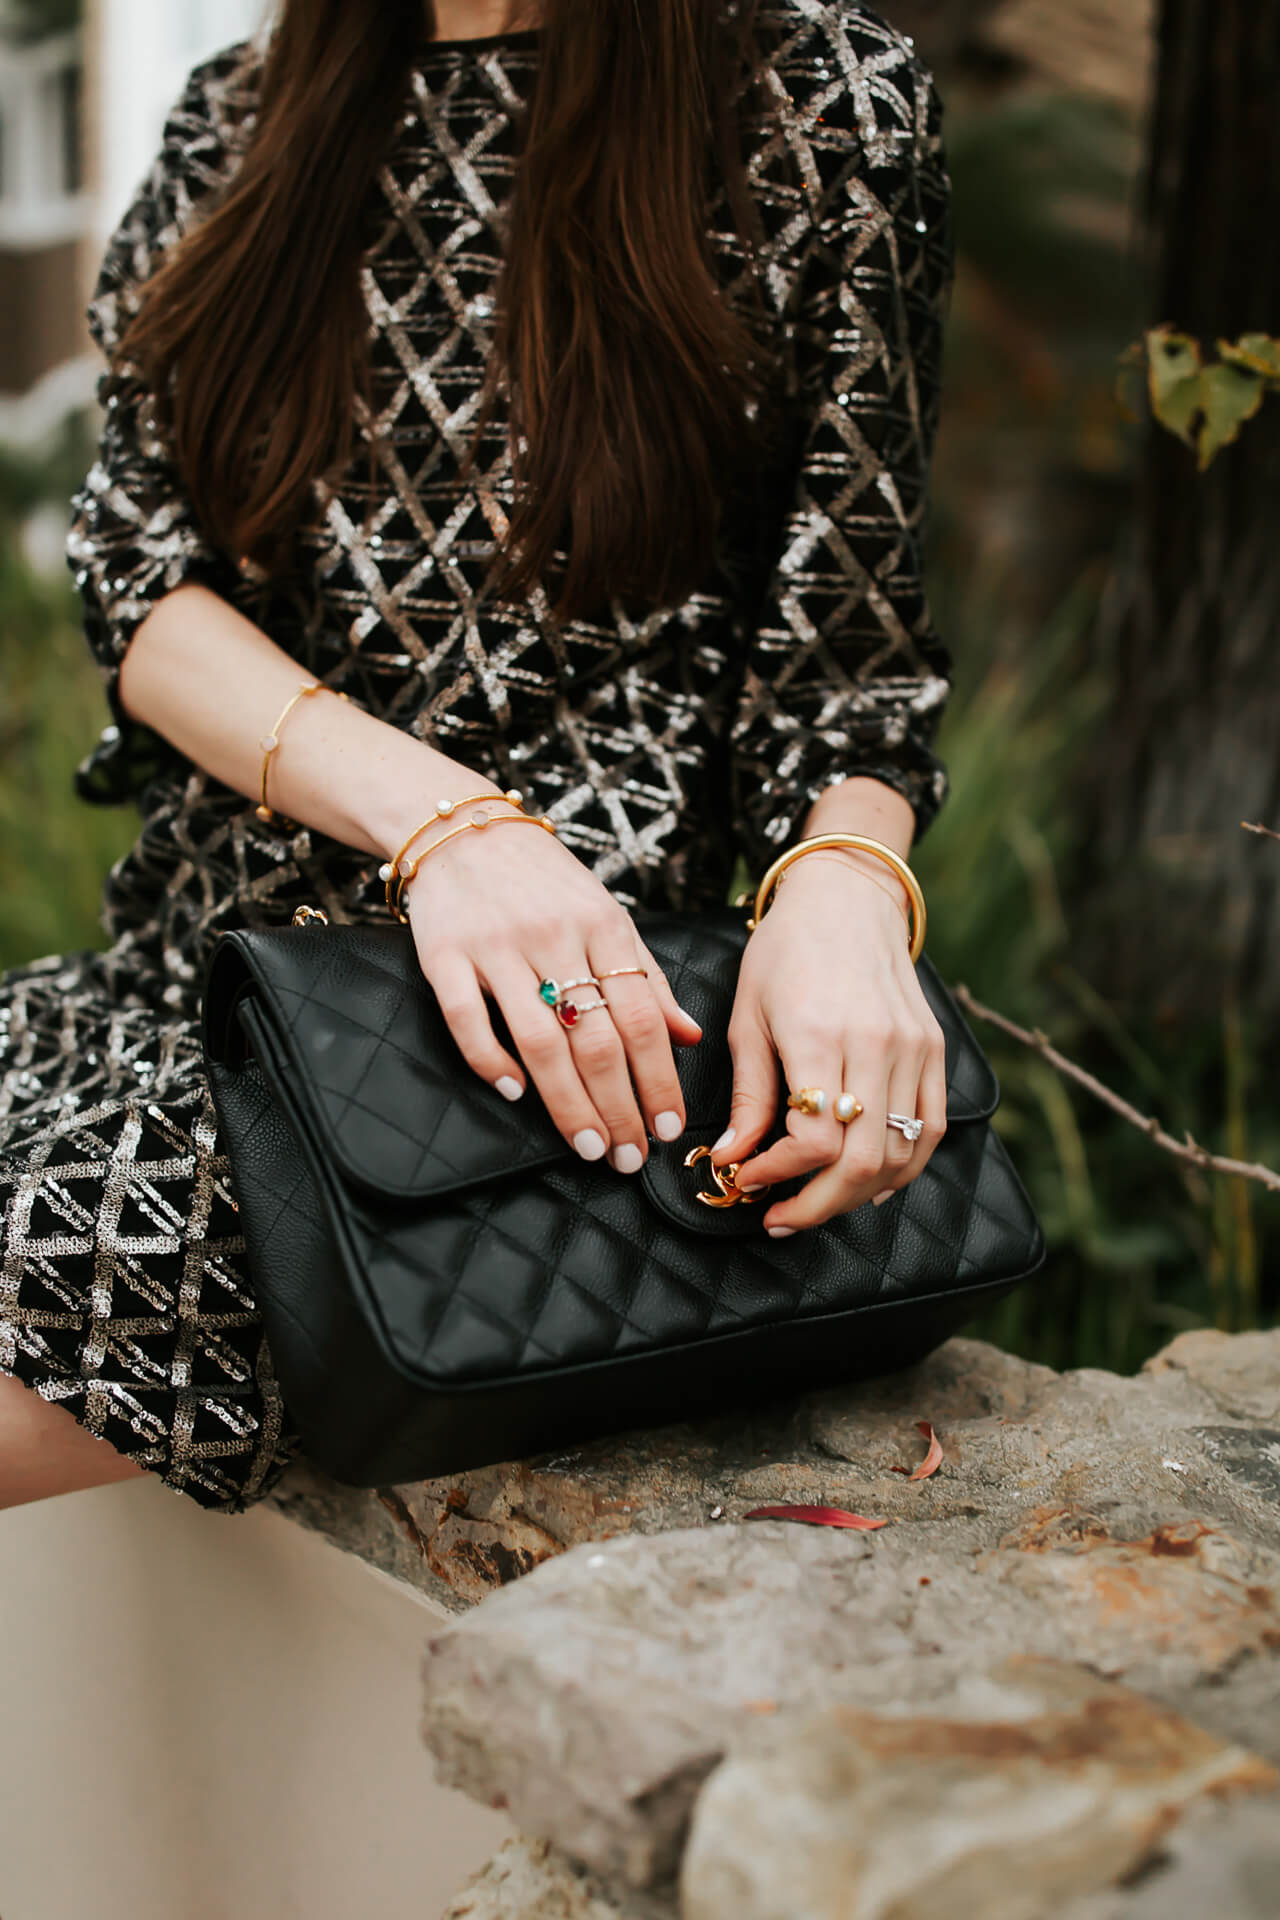 some of my favorite accessories include this bag and some of these dainty ring pieces